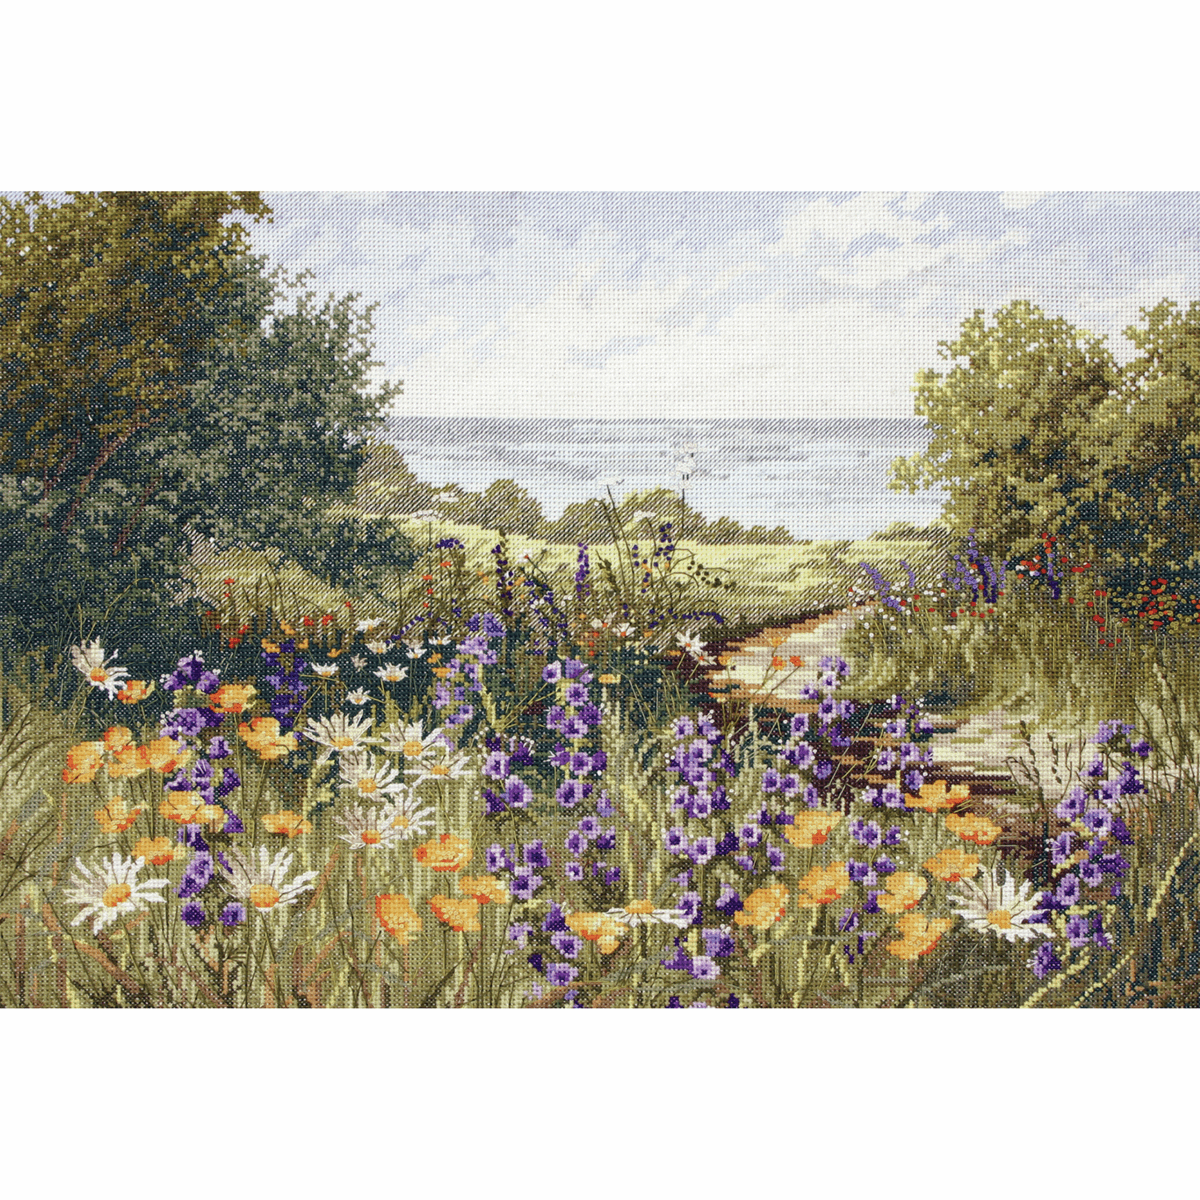 Picture of Counted Cross Stitch Kit: Maia: Clifftop Footpath